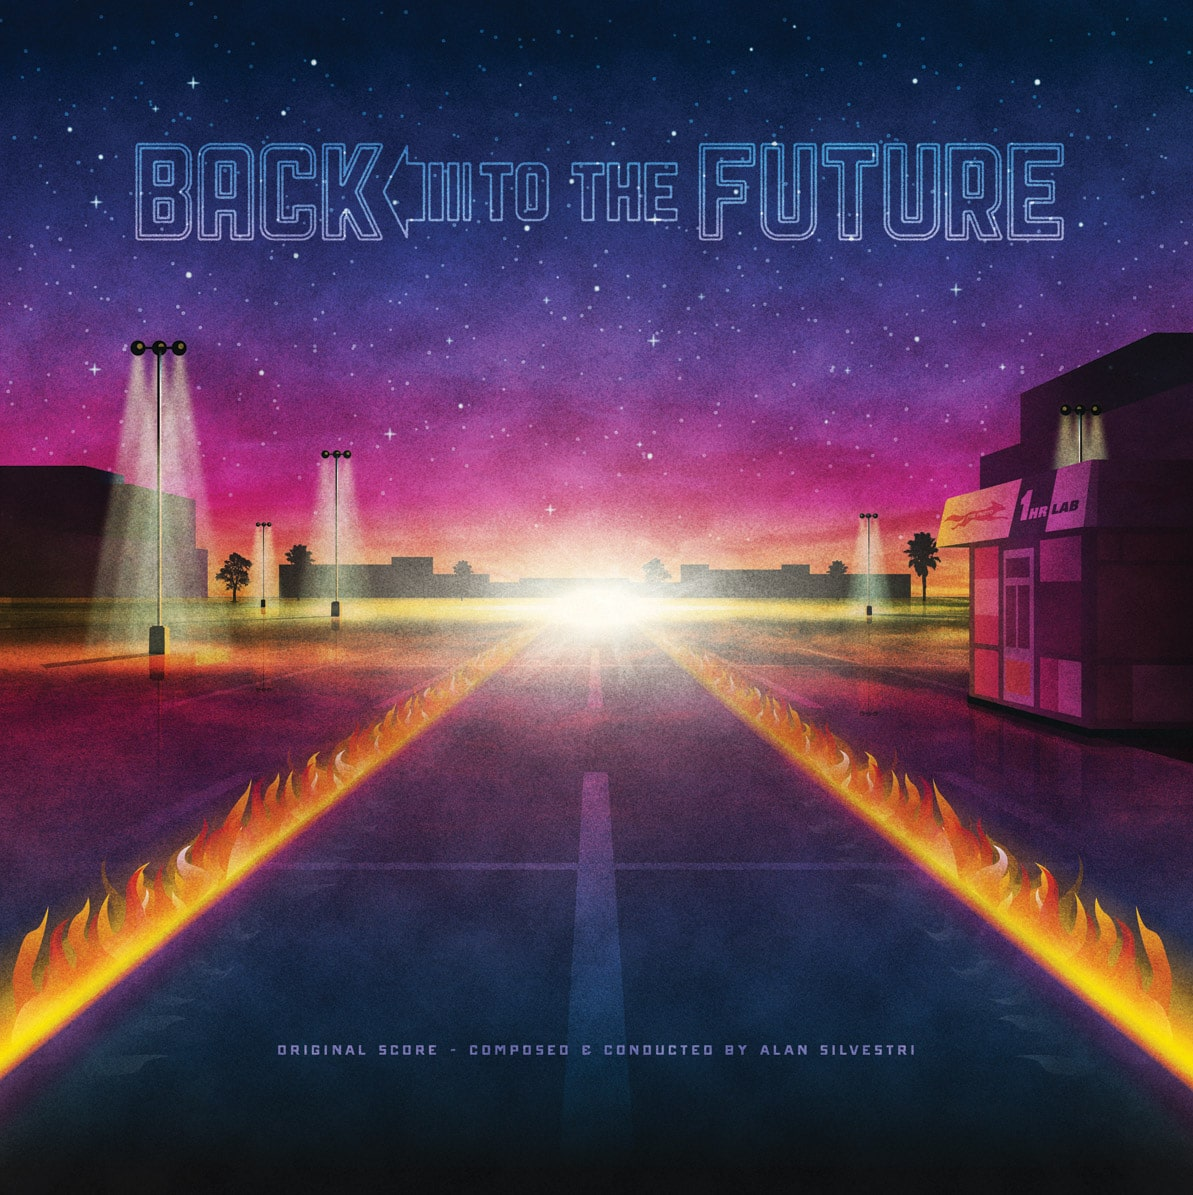 Back to the Future 1 Soundtrack Record Cover by DKNG